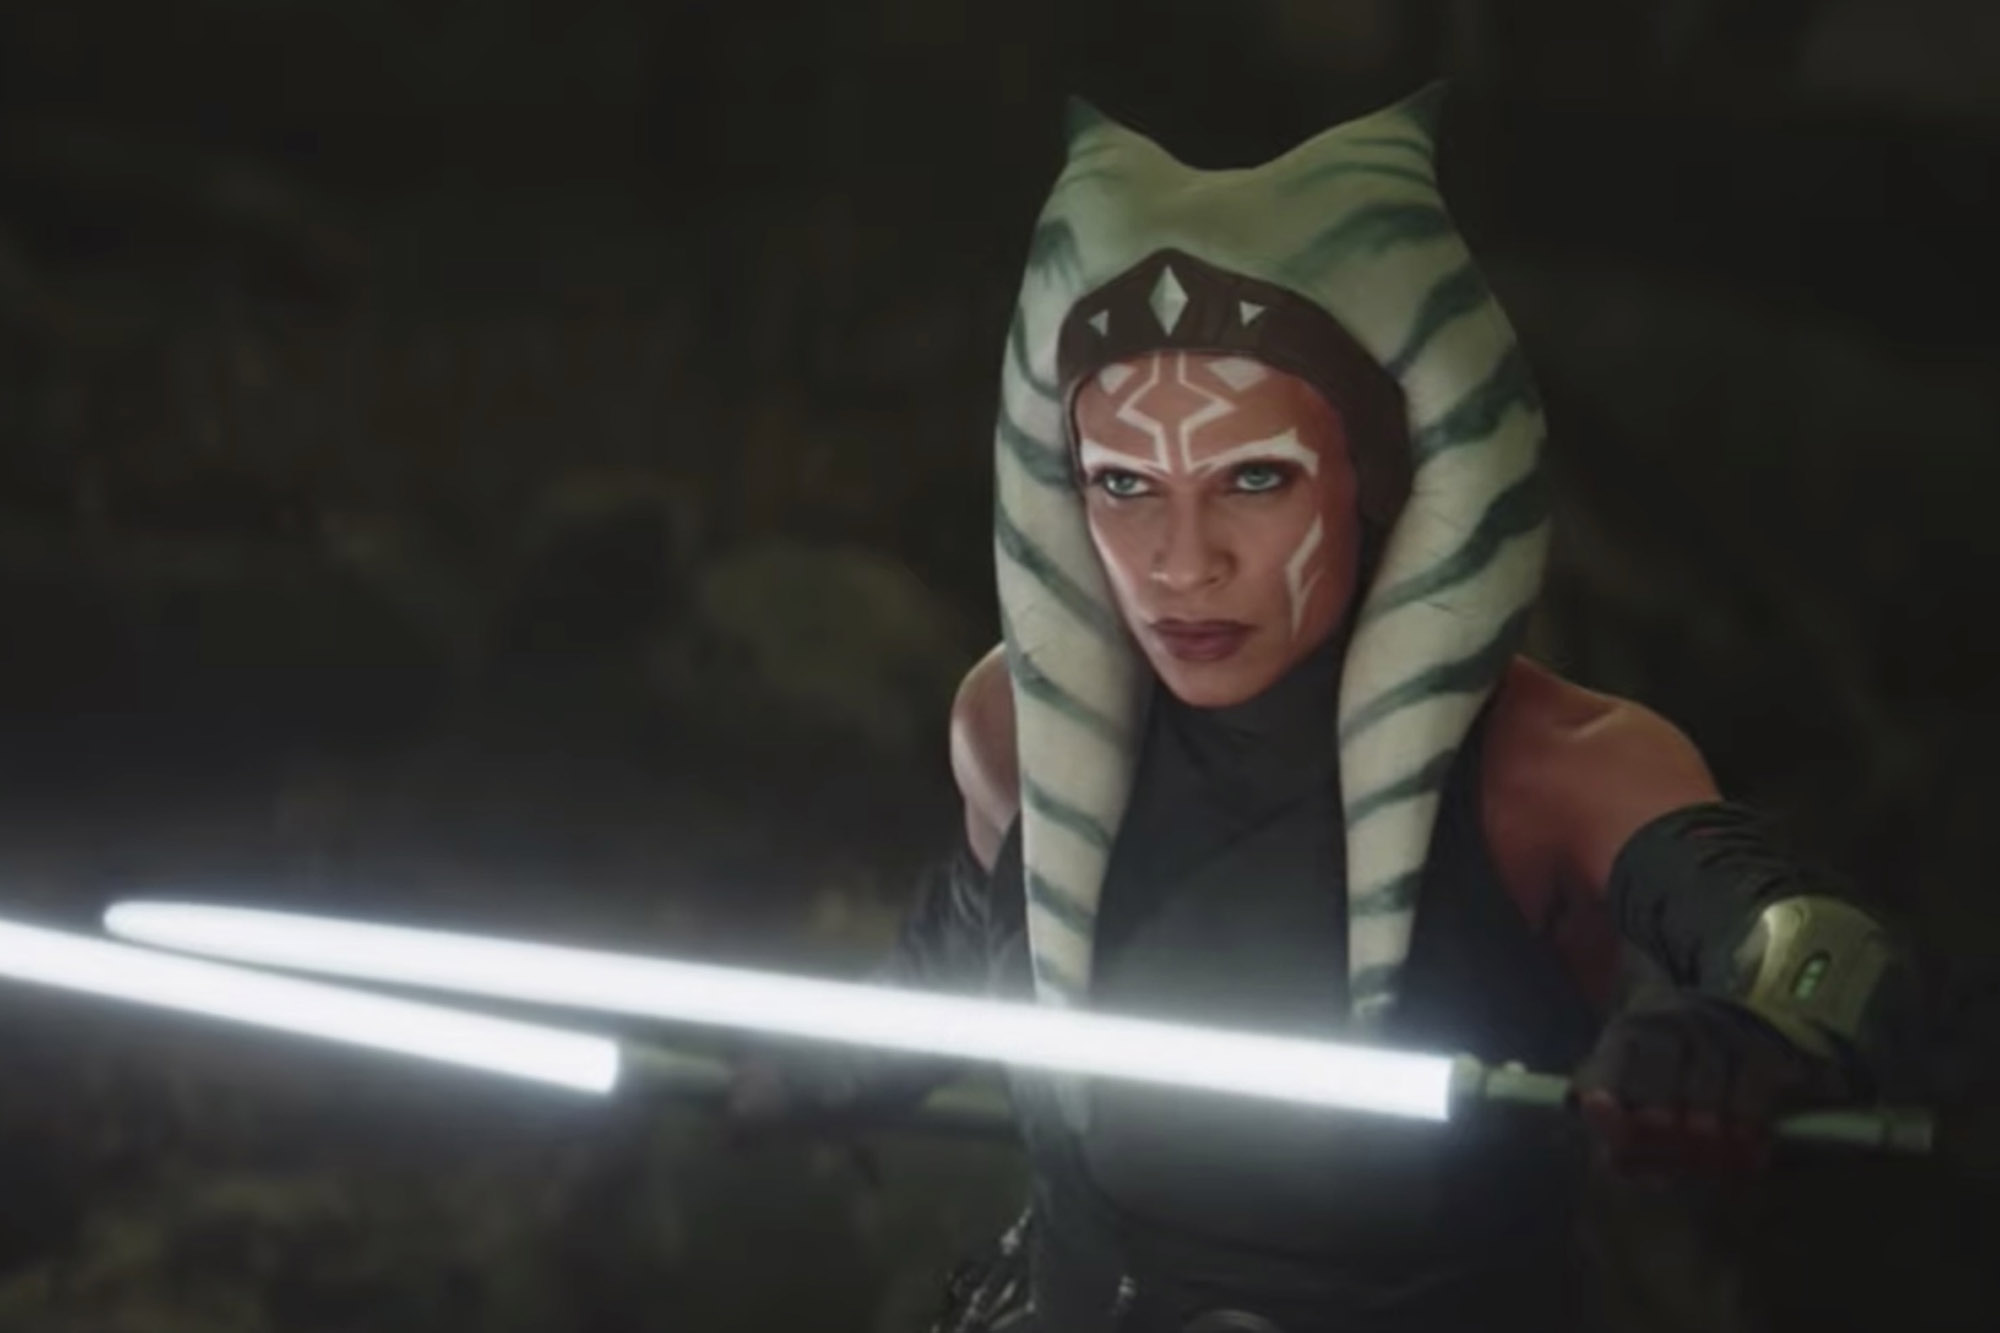 Baby Yoda gets a name, Ahsoka Tano debuts in 'The Mandalorian'